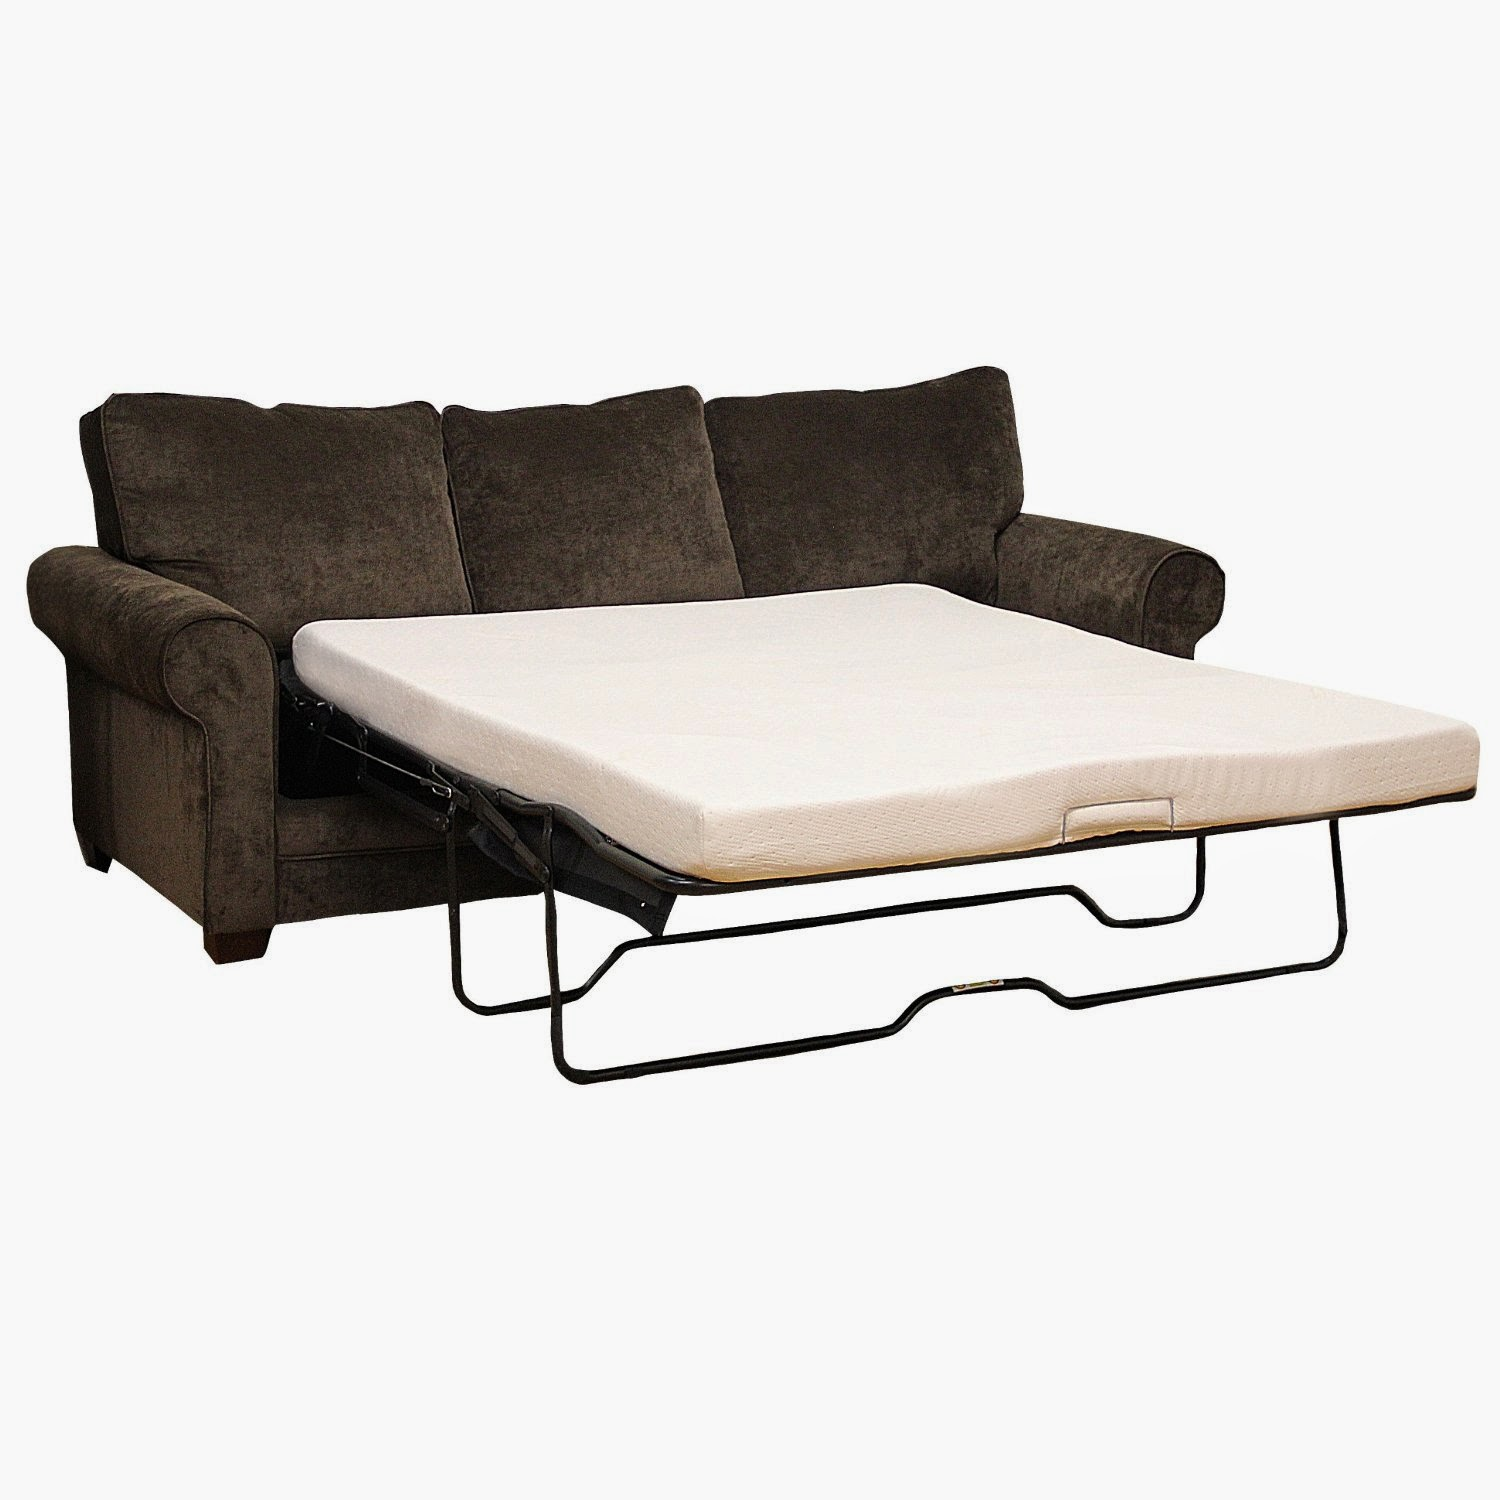 Fold Out Couch Couch Bed